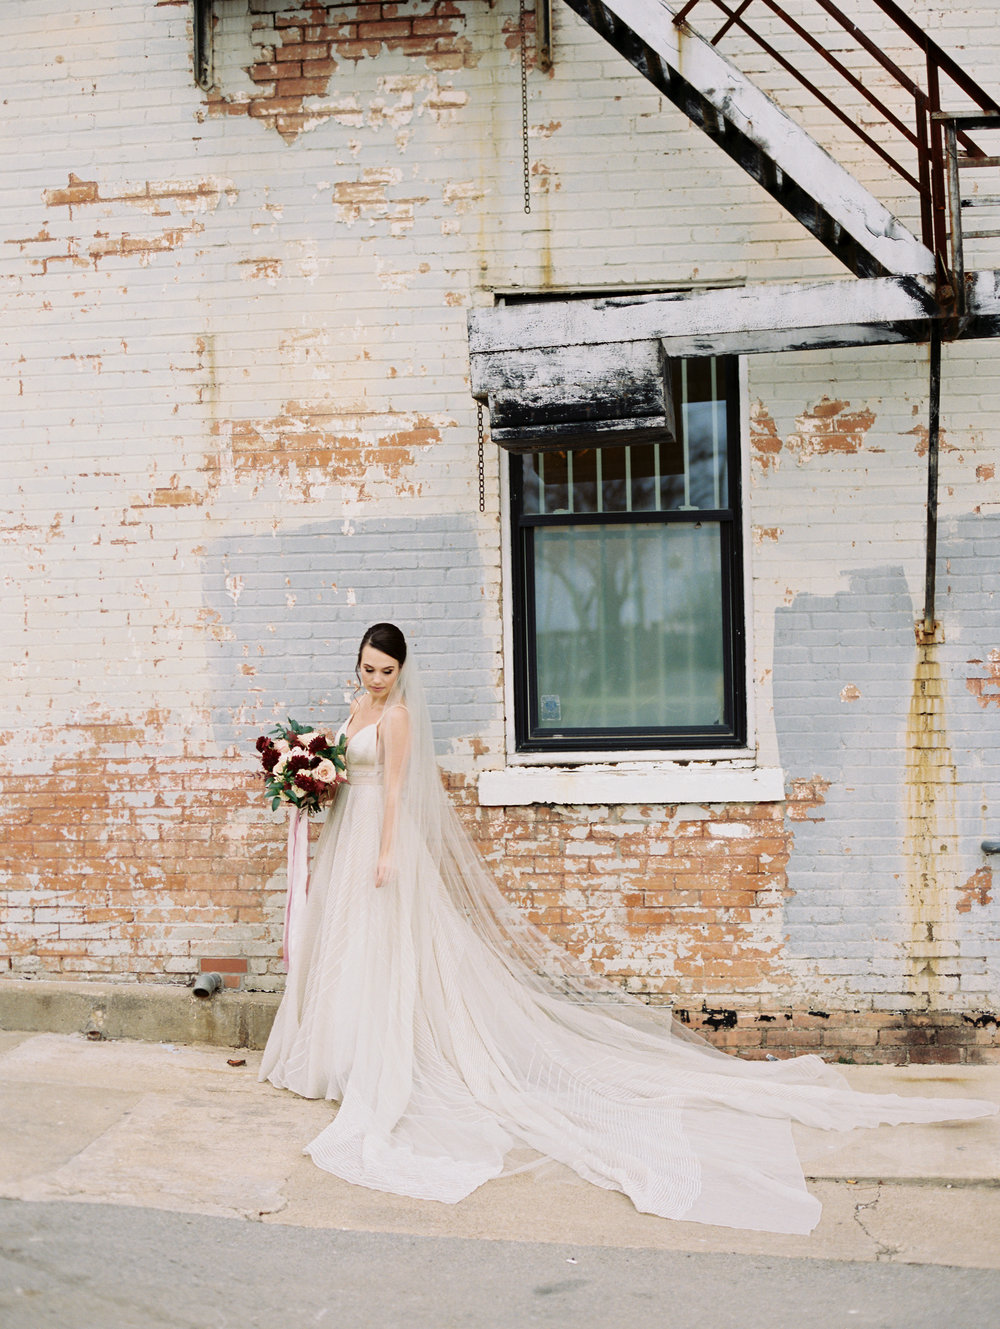 brik-venue-bridals-ar-photography-lindsey-27.jpg